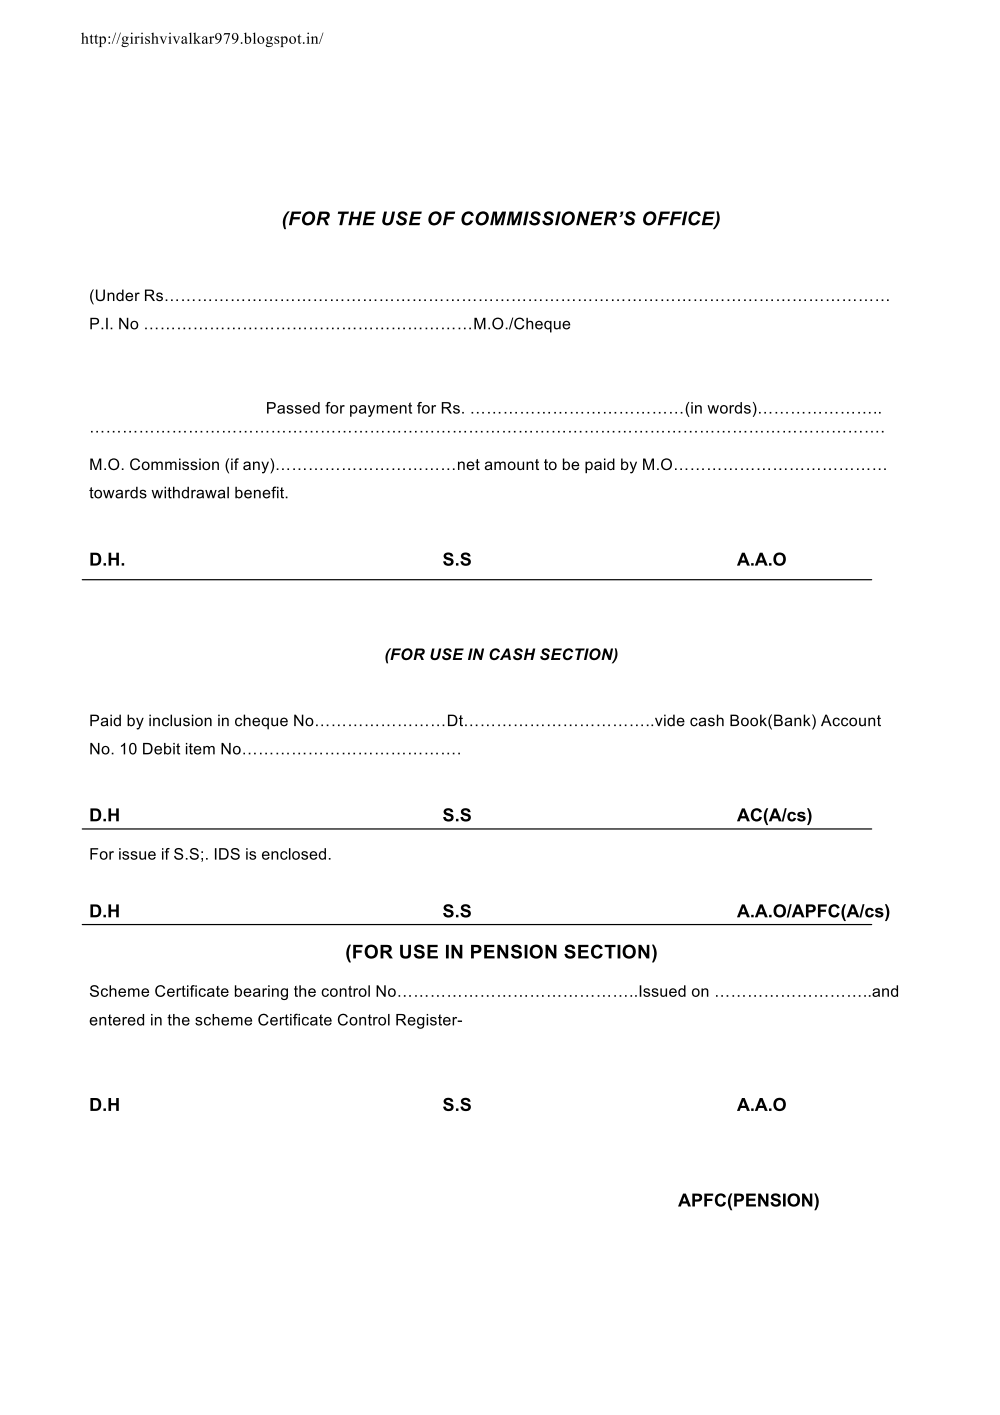 Pf Form 10c 19 New Epf Withdrawal Forms Withdraw Without Employer ...